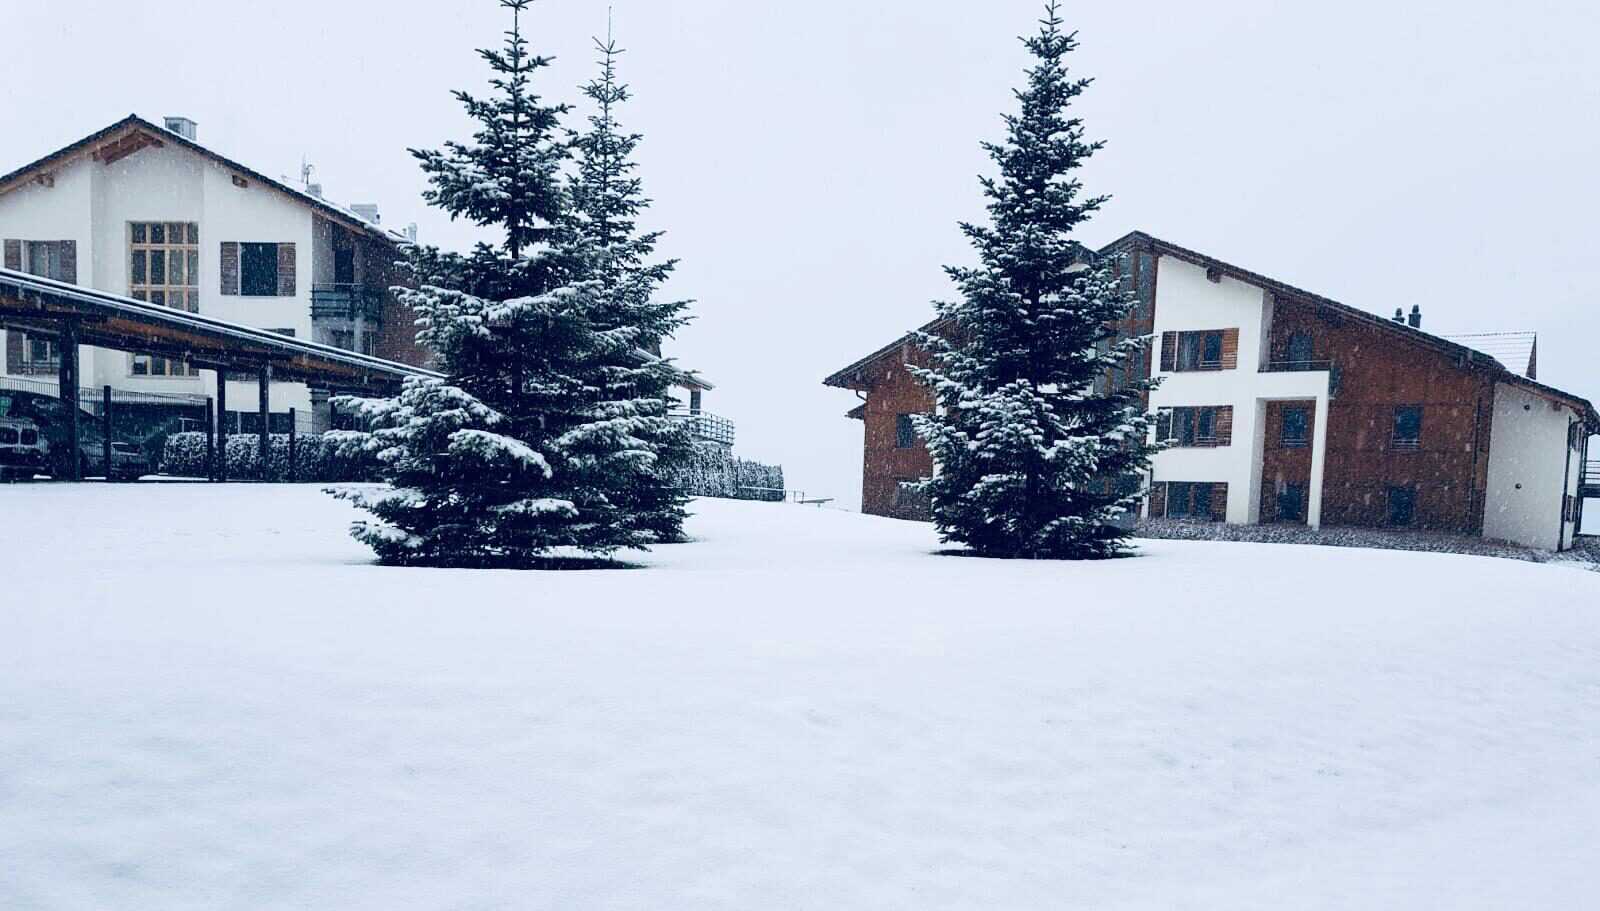 In Resort Walensee apartments you find snow everywere! Even right outside your apartment!